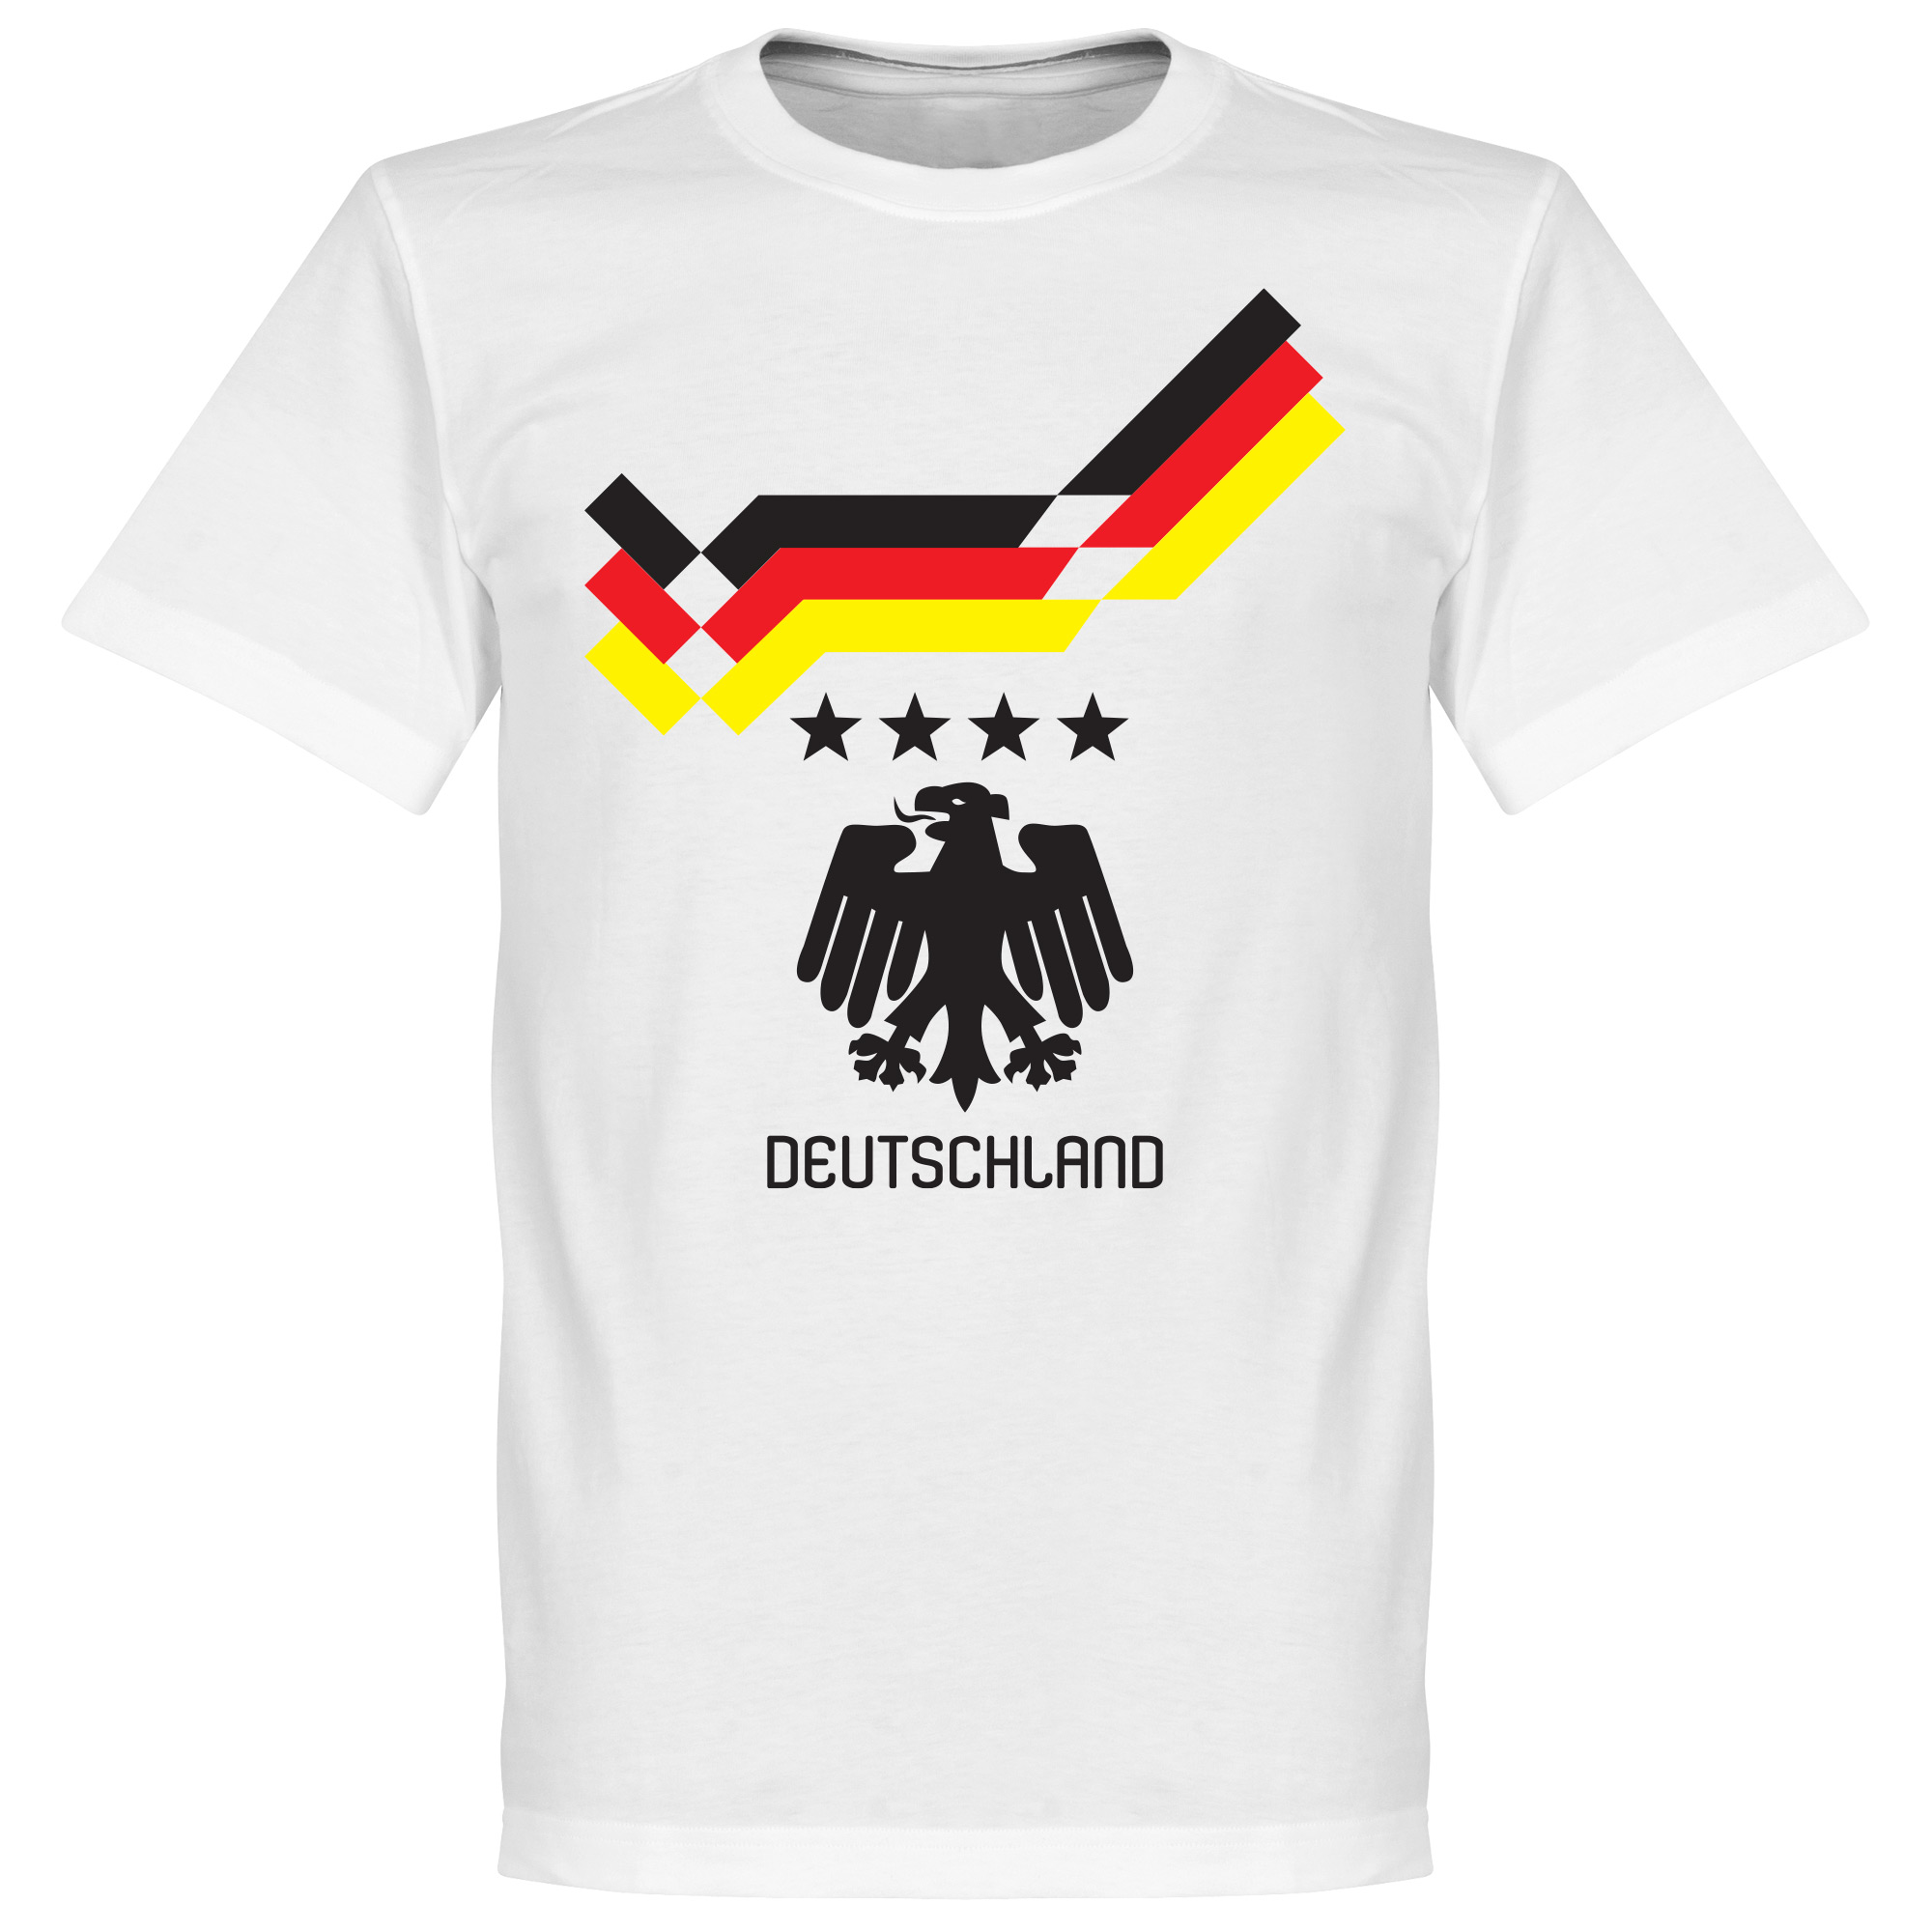 1990 Germany 4 Star Retro Tee - White - L